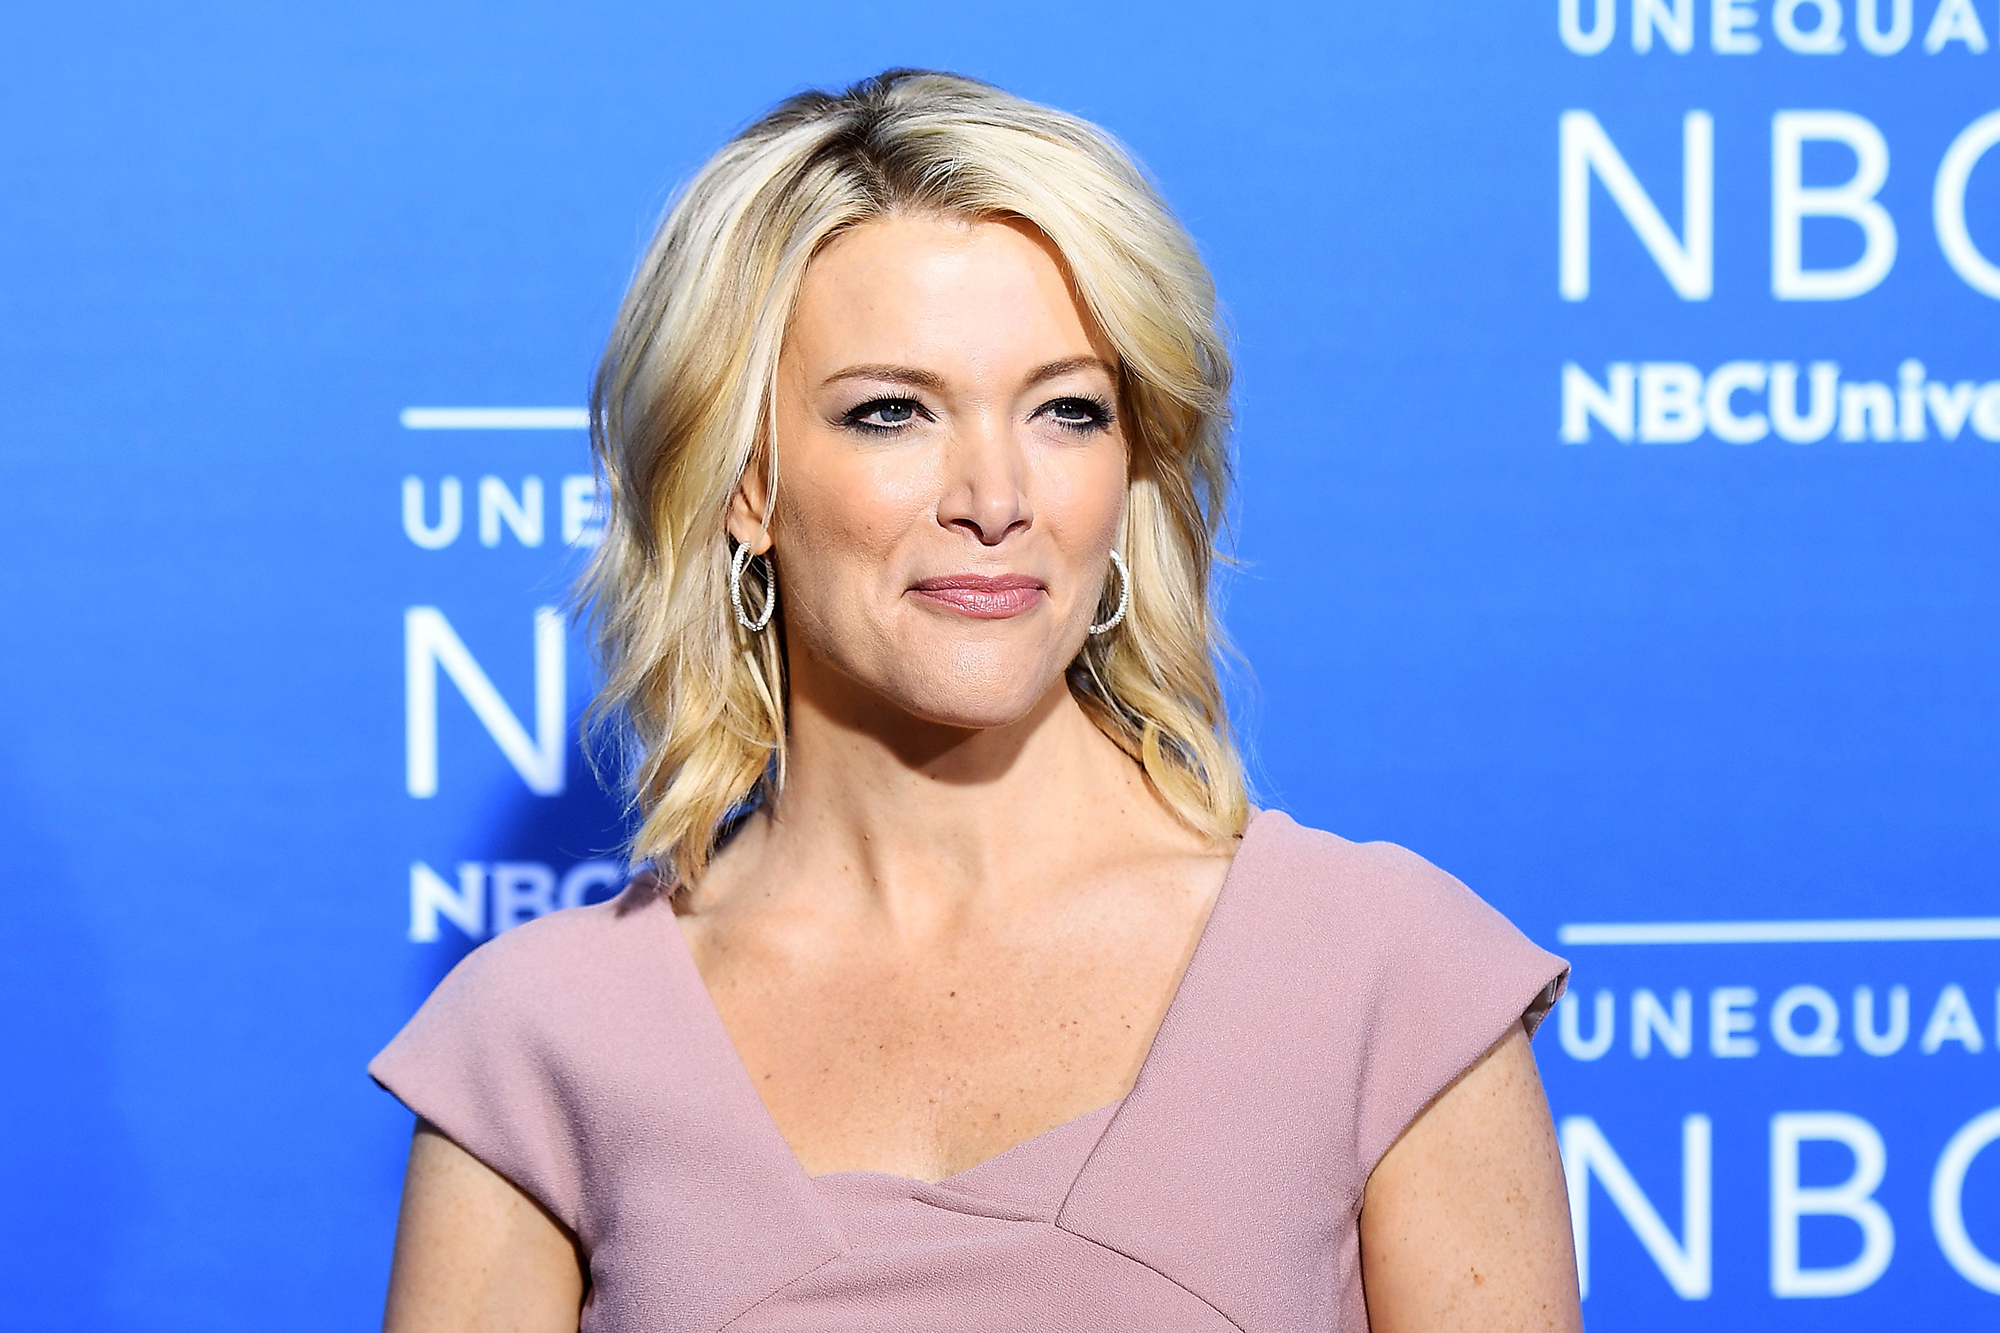 Megyn Kelly, on May 15, 2017 in New York City.